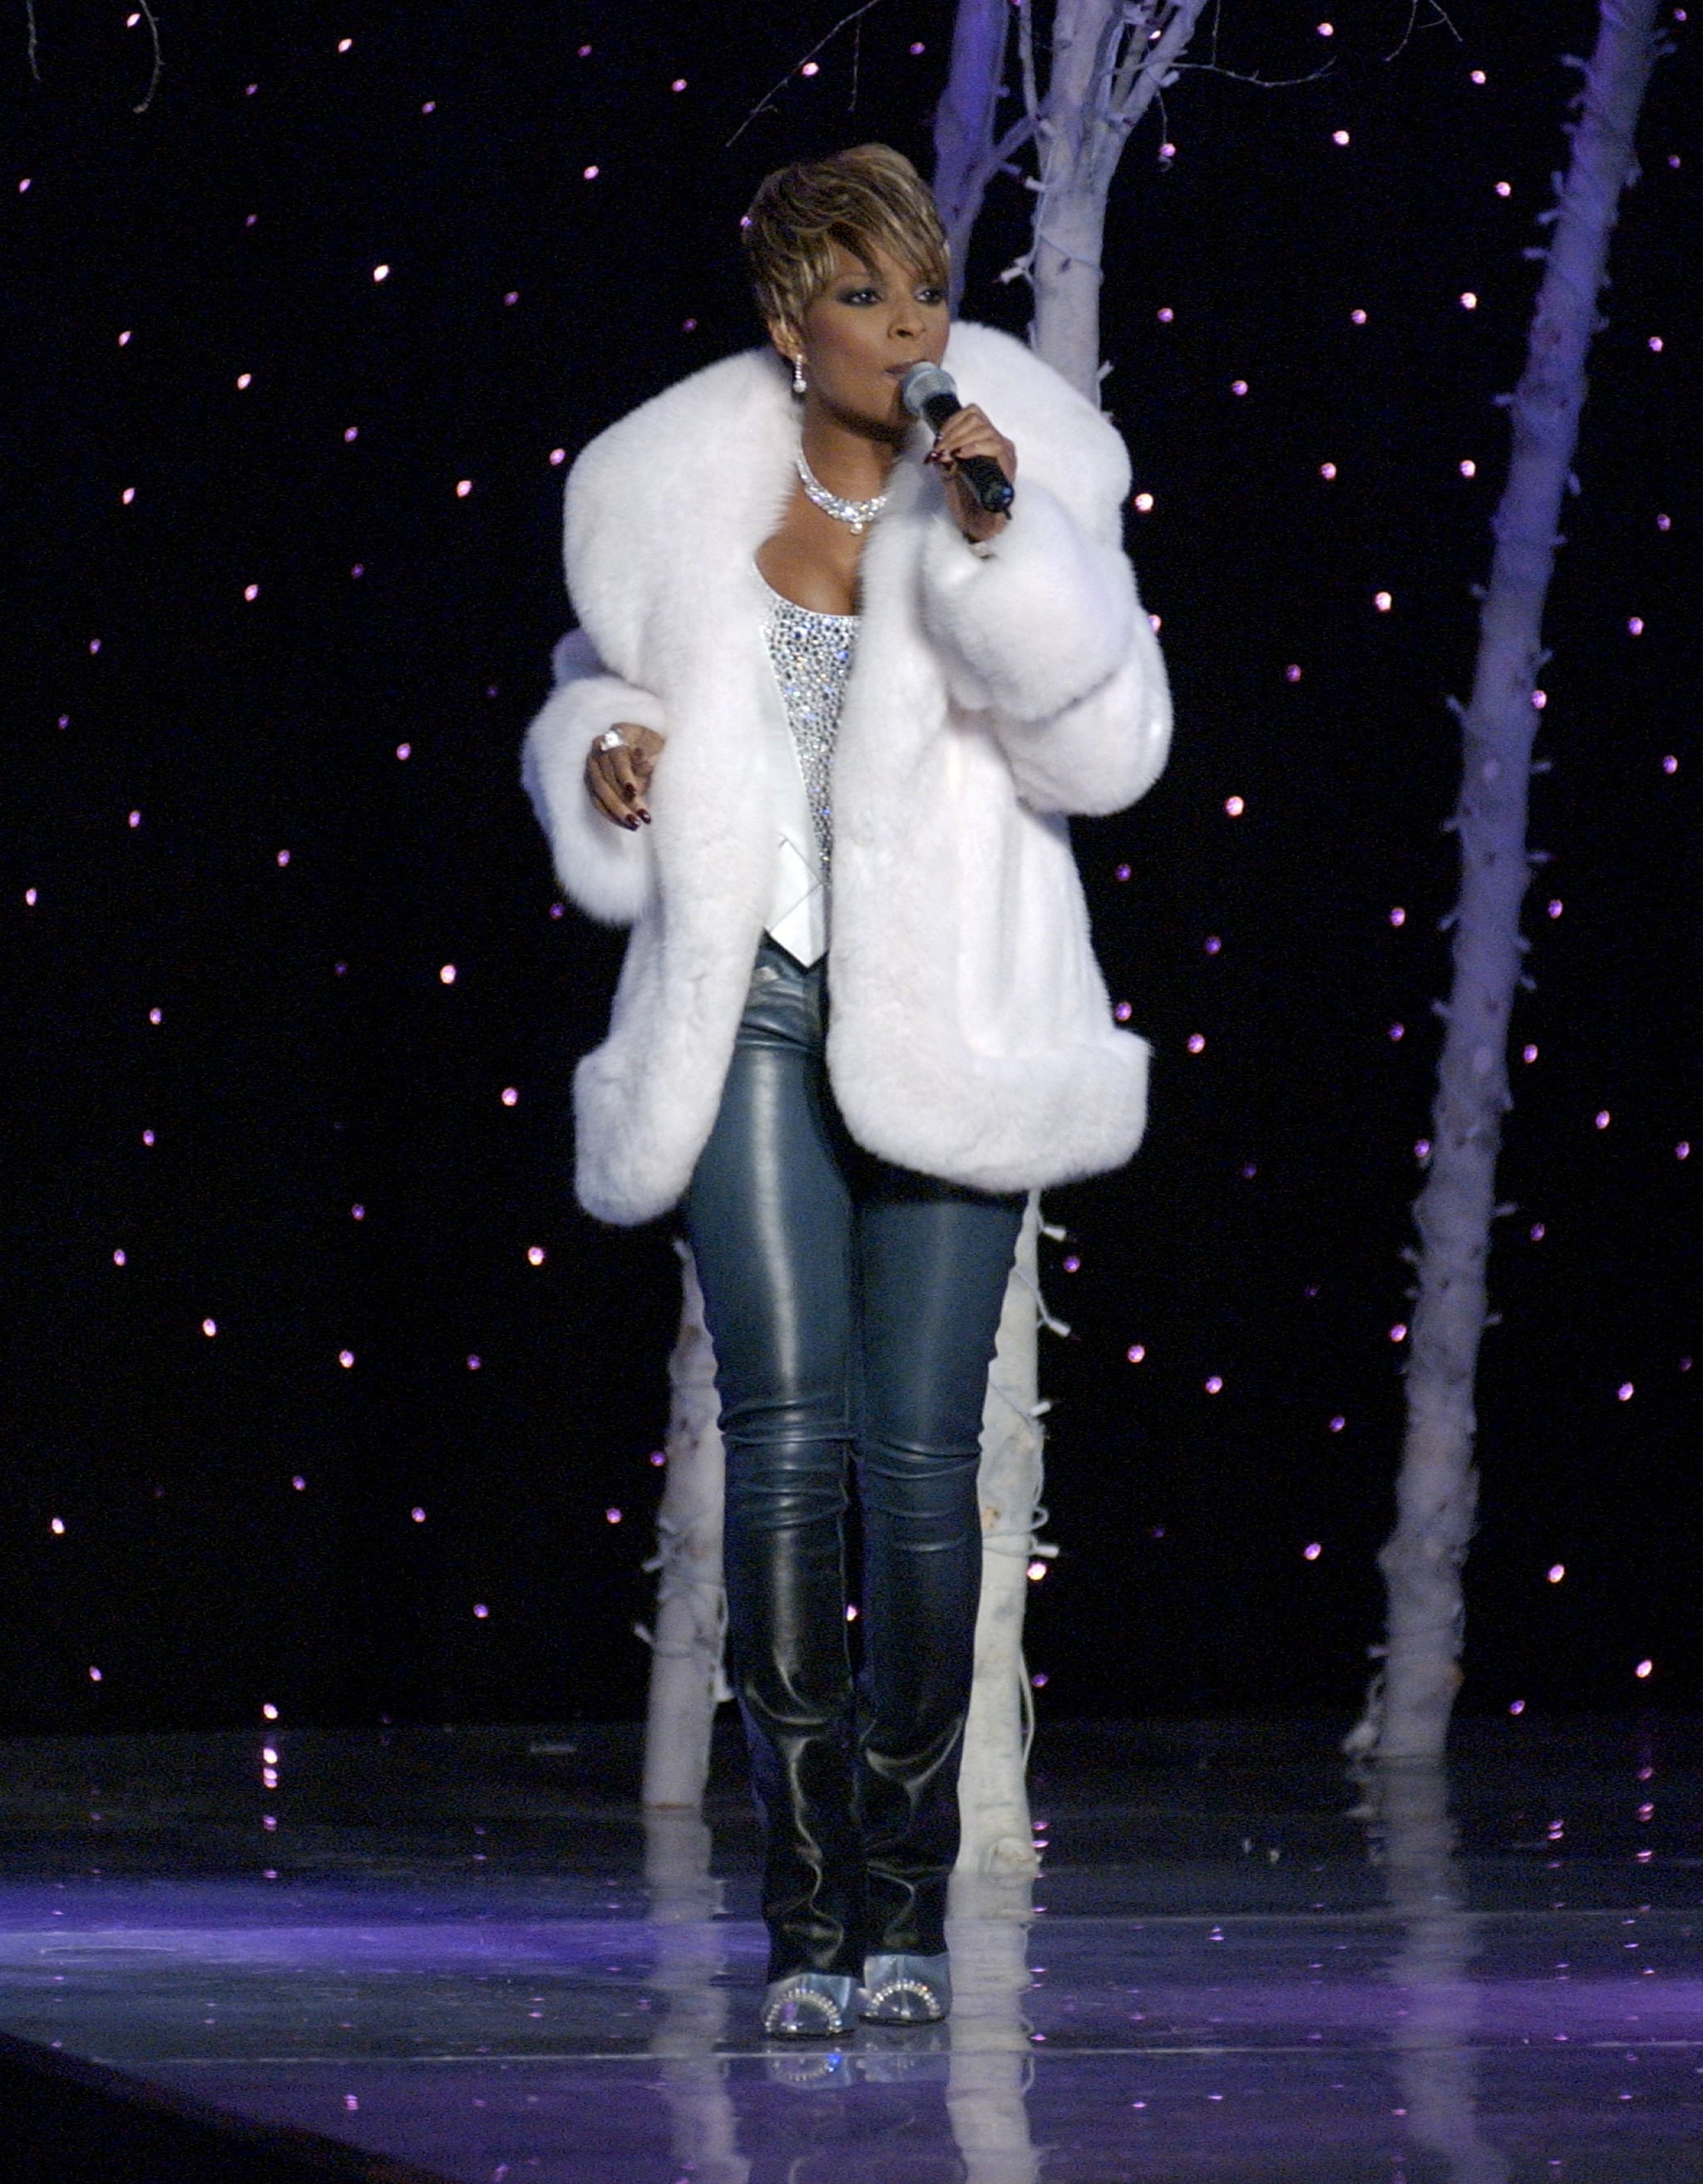 Mary J. Blige performed in a white coat and leather pants in 2001.